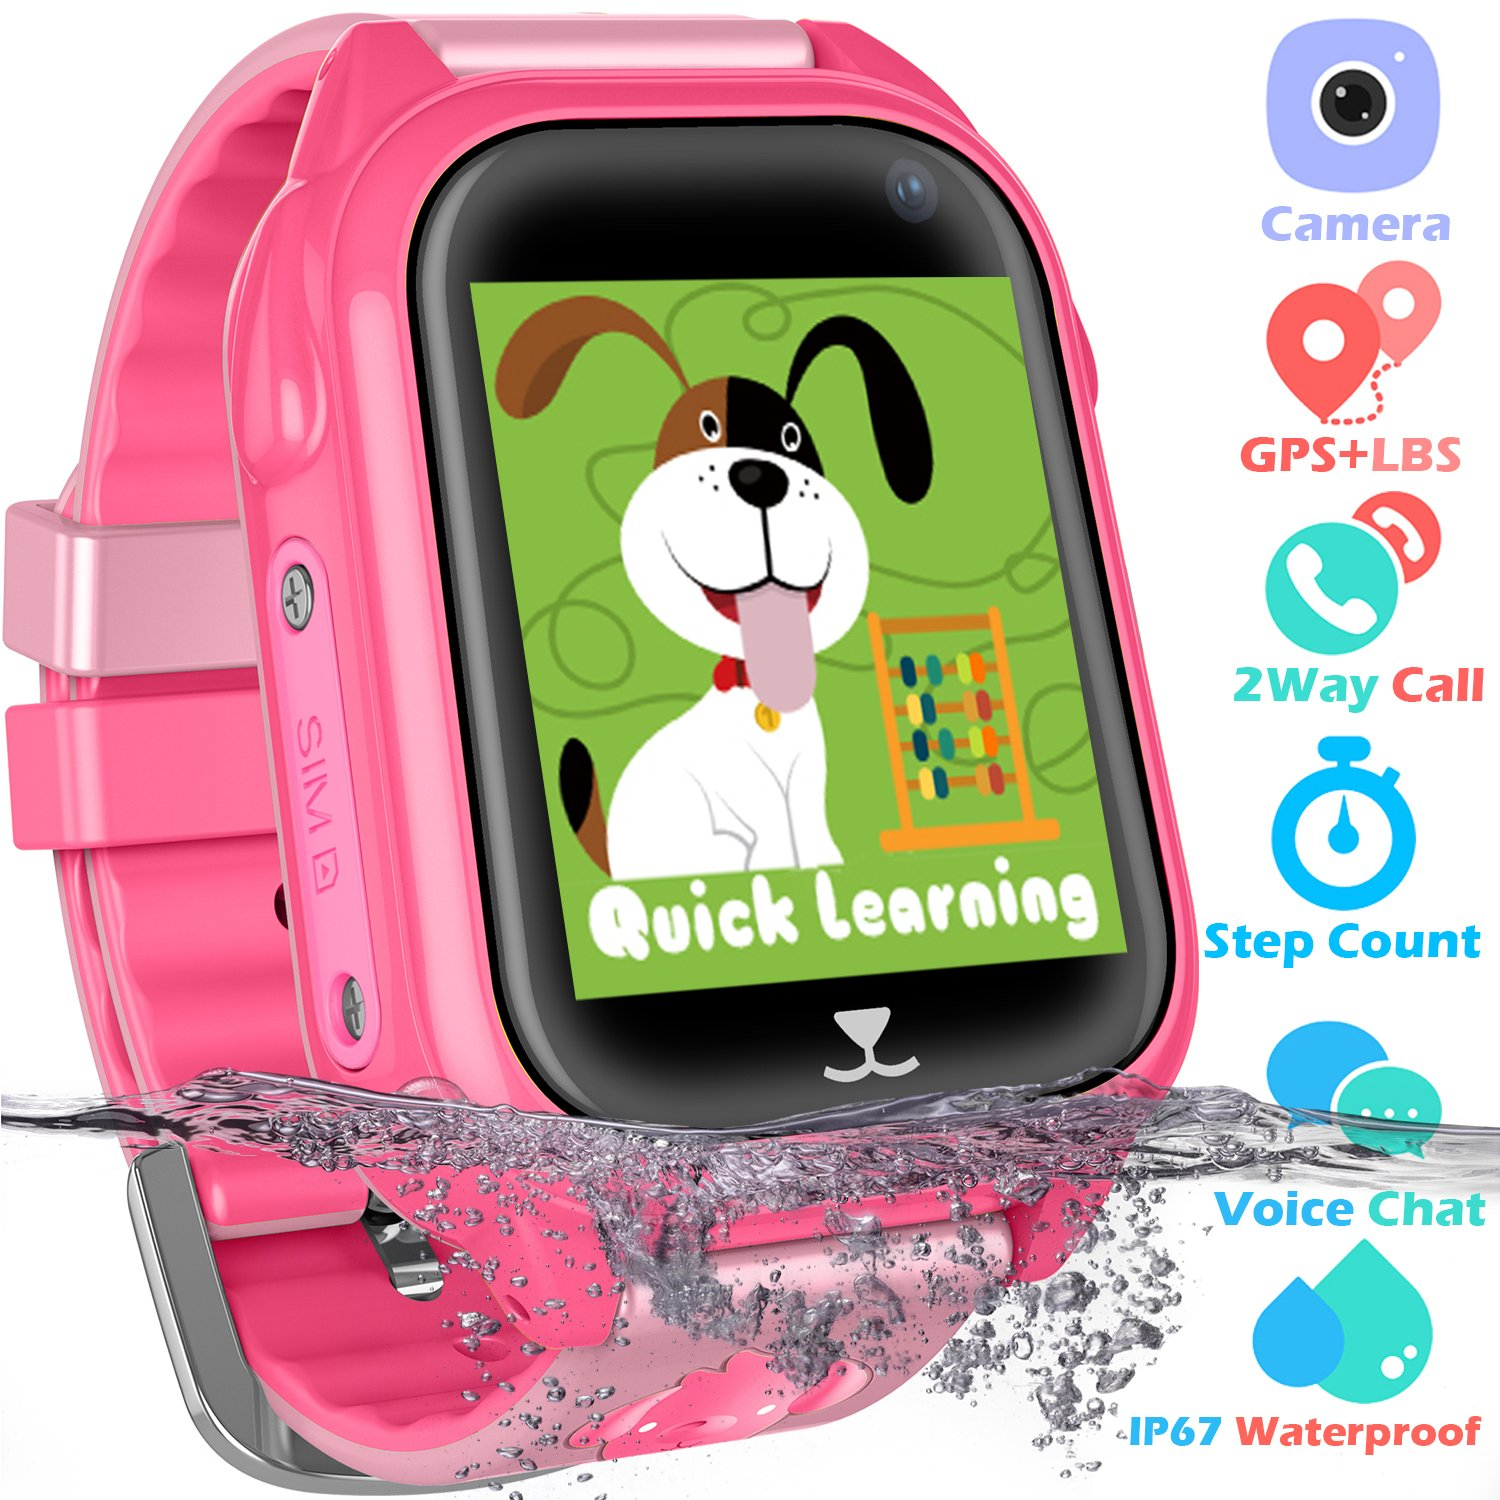 Watch with a GPS tracker is something that will help you save your children